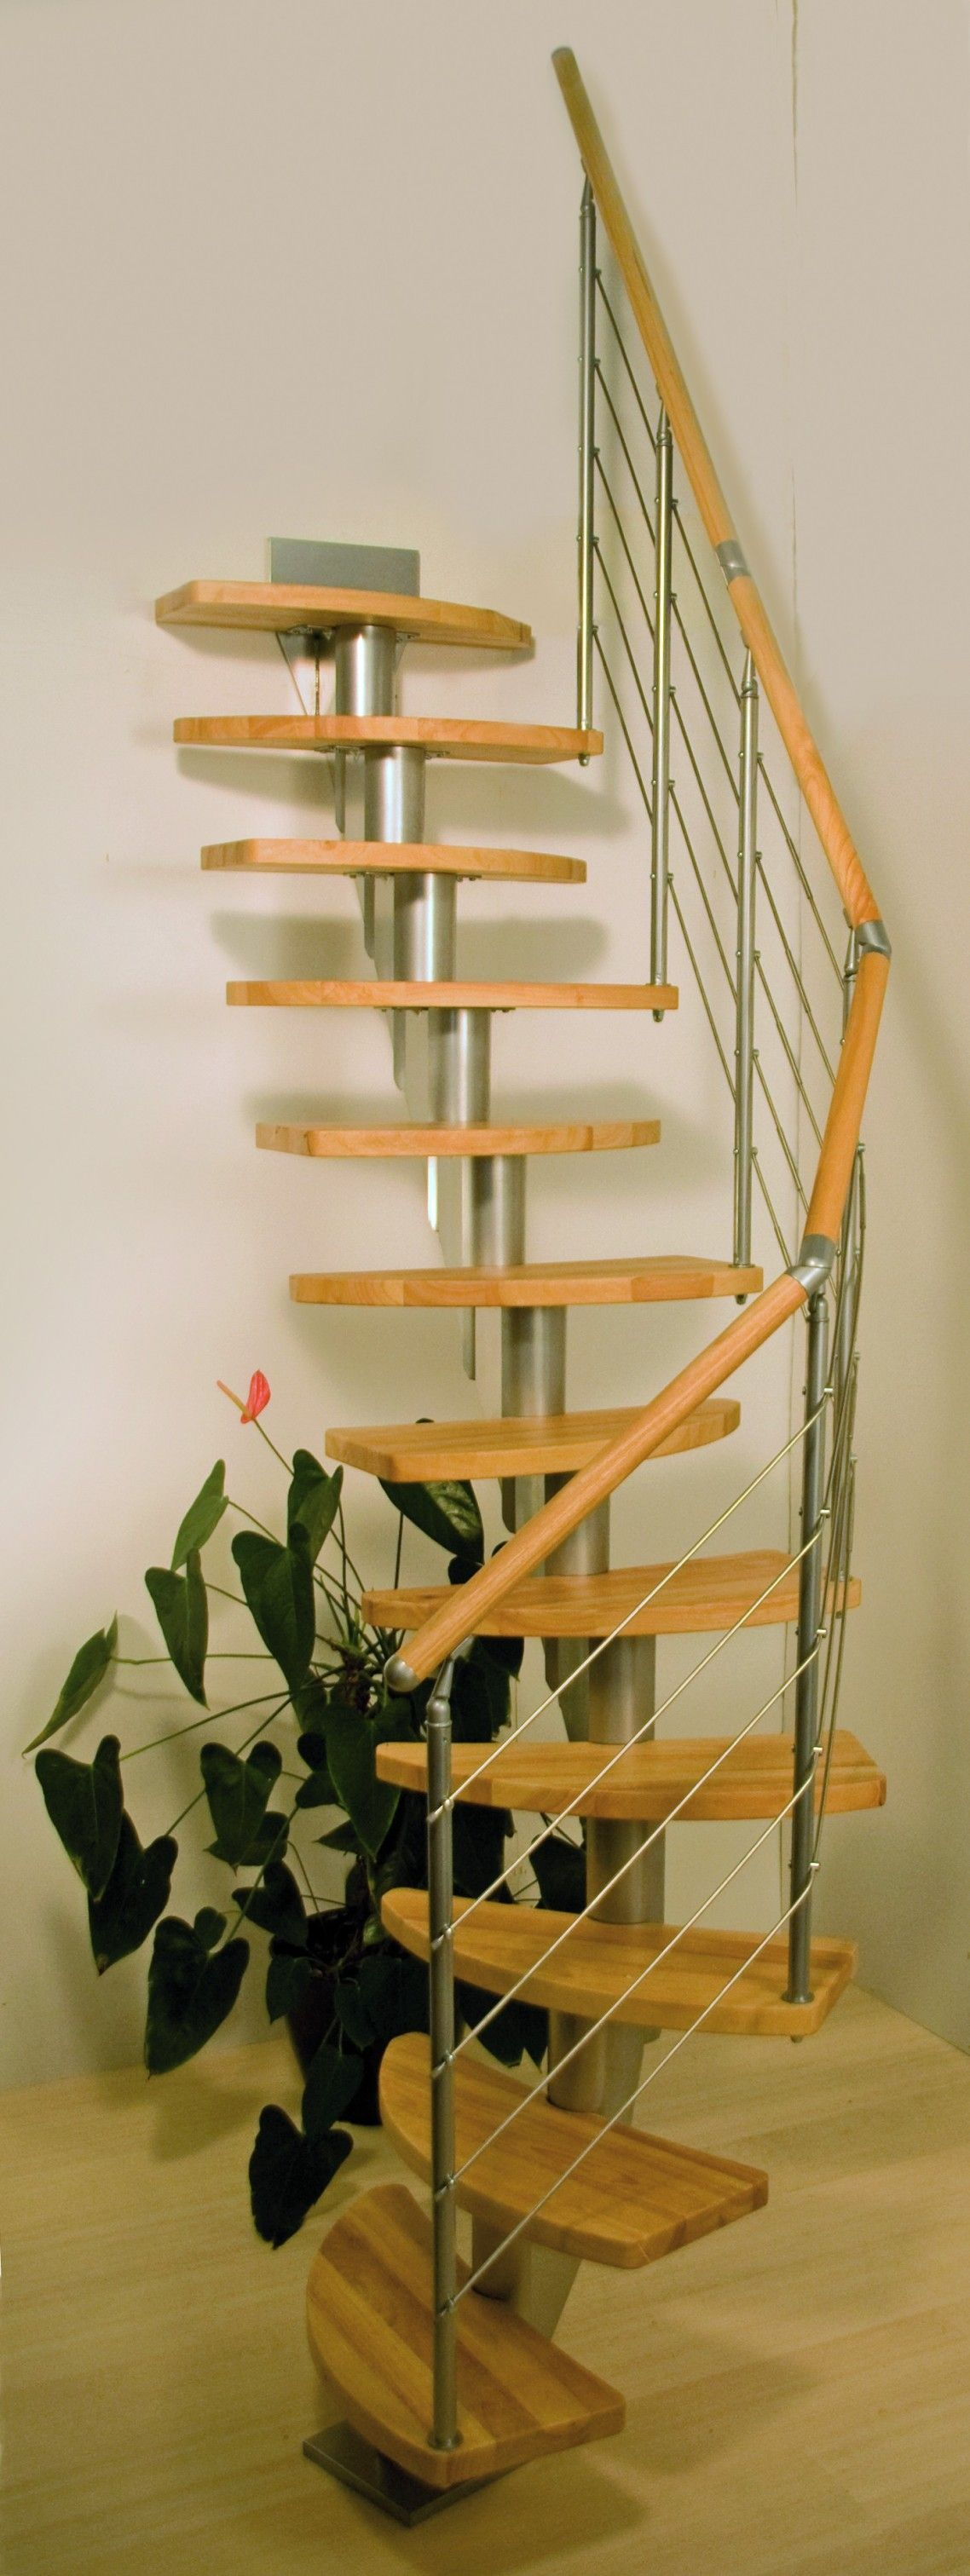 Stunning small space staircase design ideas with floating stairs shape also wooden treads and - Small space staircase image ...